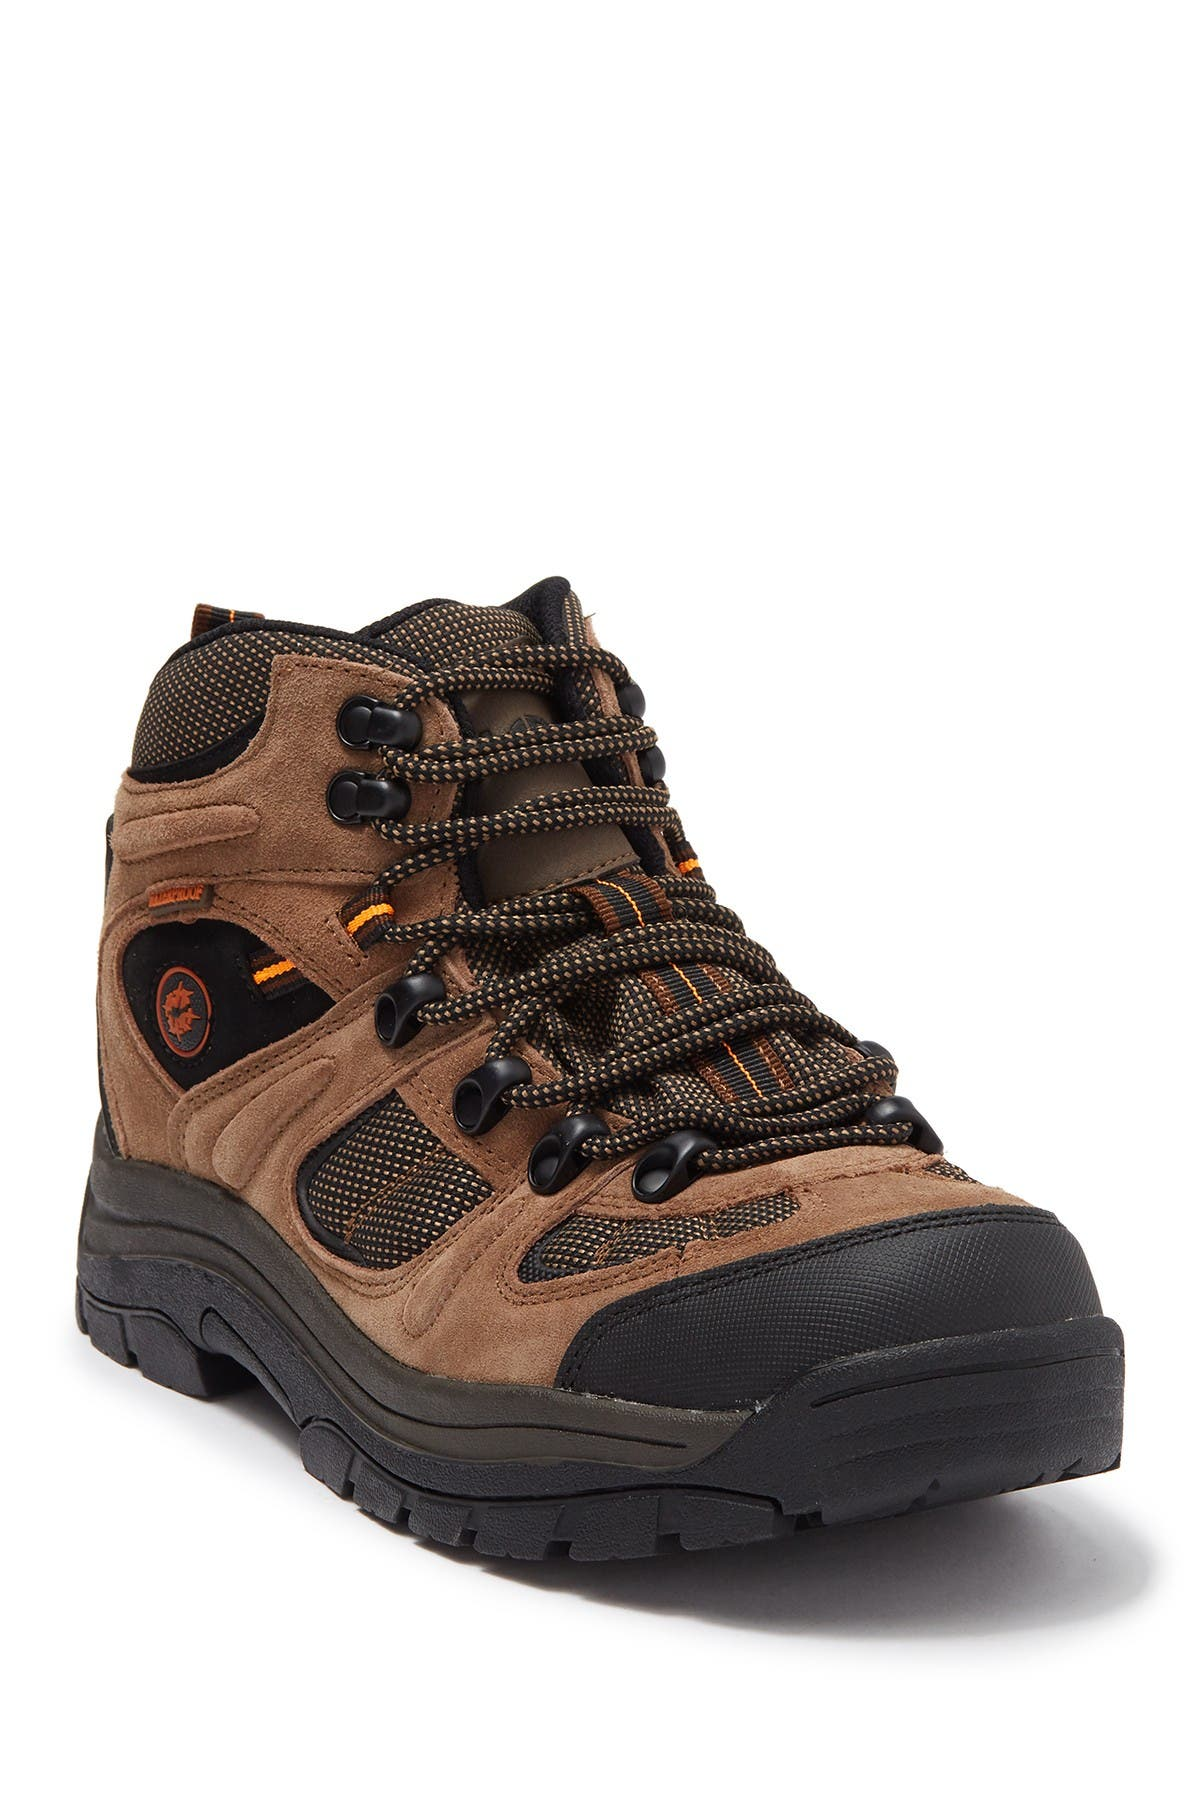 Image of Nevados Klondike Suede Hiking Boot